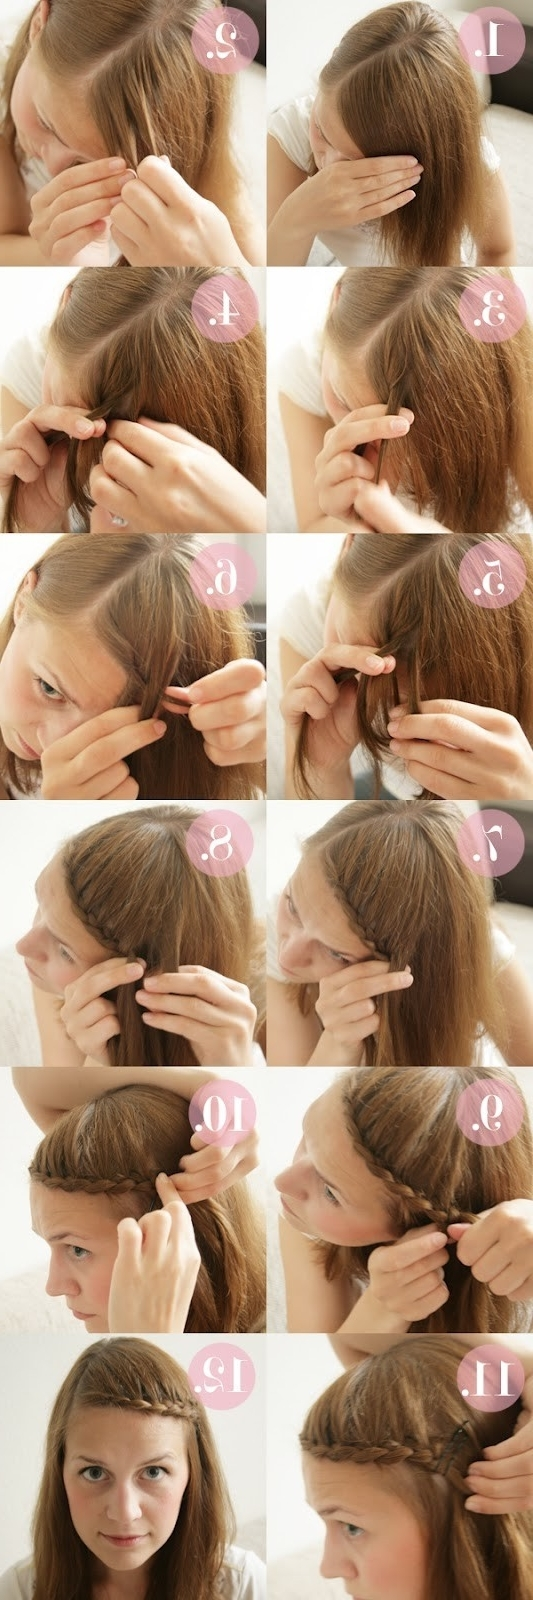 15 Braided Bangs Tutorials: Cute, Easy Hairstyles – Pretty Designs Inside Updos For Long Hair With Bangs (View 9 of 15)